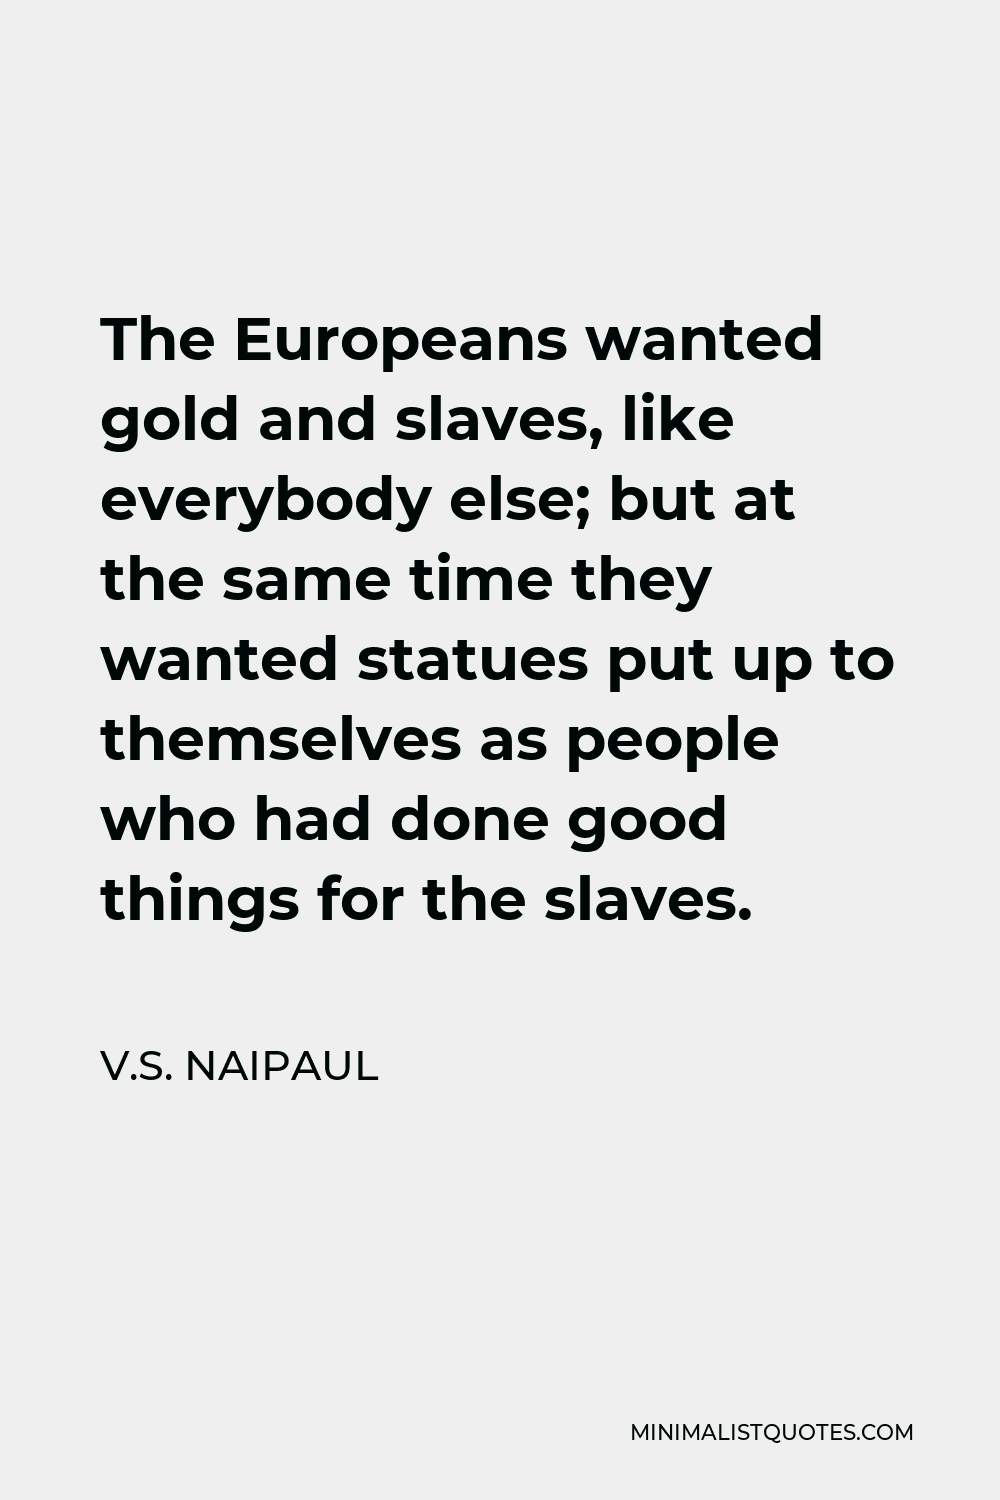 V.S. Naipaul Quote - The Europeans wanted gold and slaves, like everybody else; but at the same time they wanted statues put up to themselves as people who had done good things for the slaves.